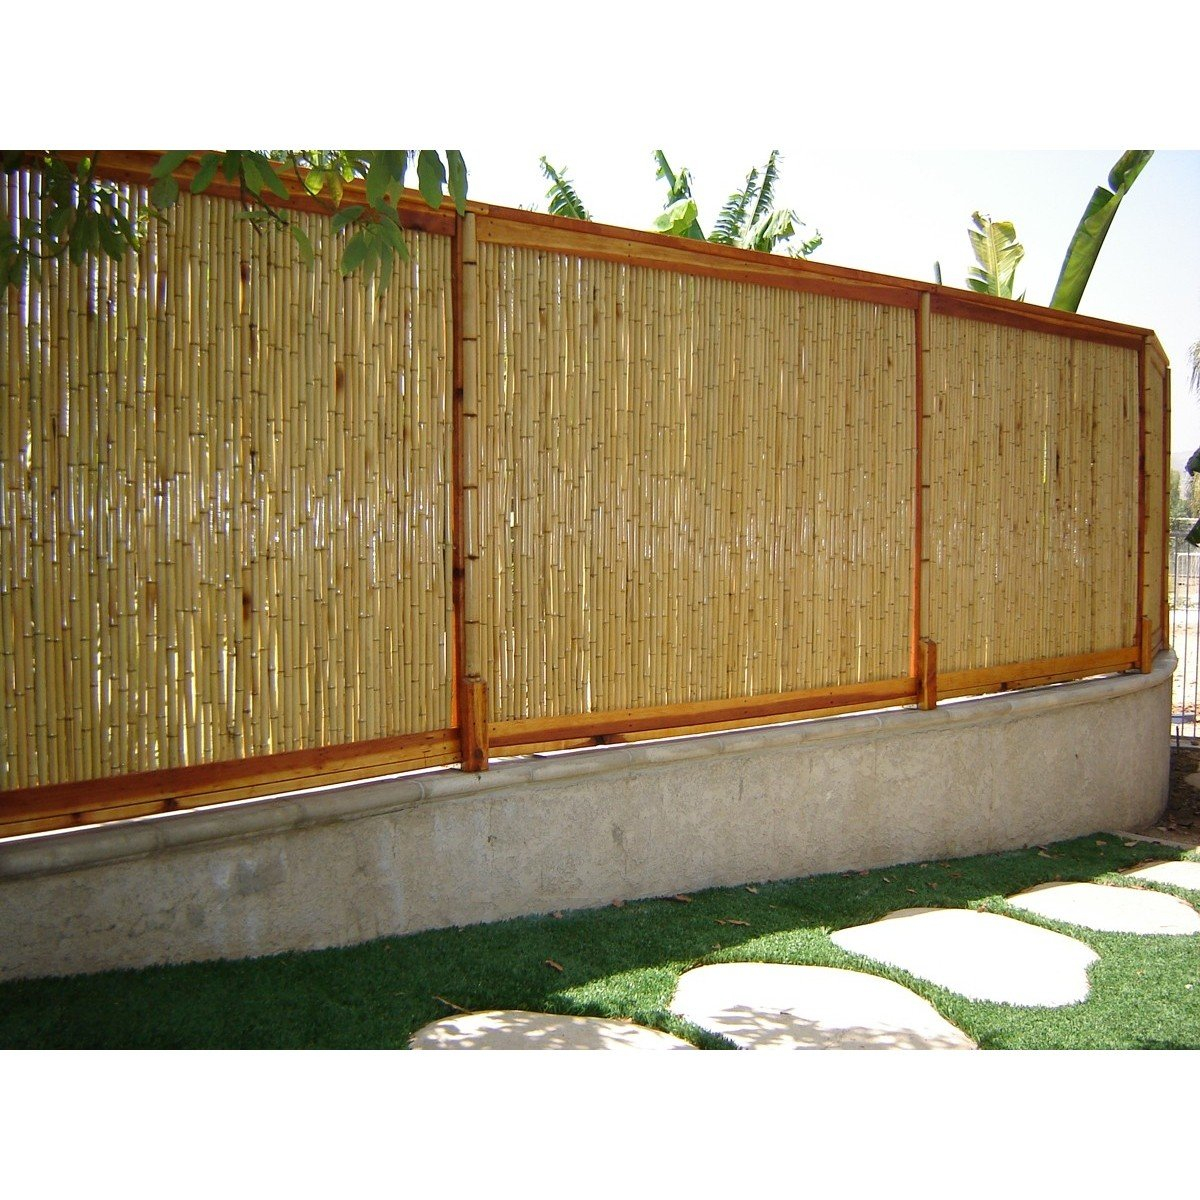 8 Ft W Rolled Bamboo Fence Panel within Backyard XScapes Rolled Bamboo Fencing